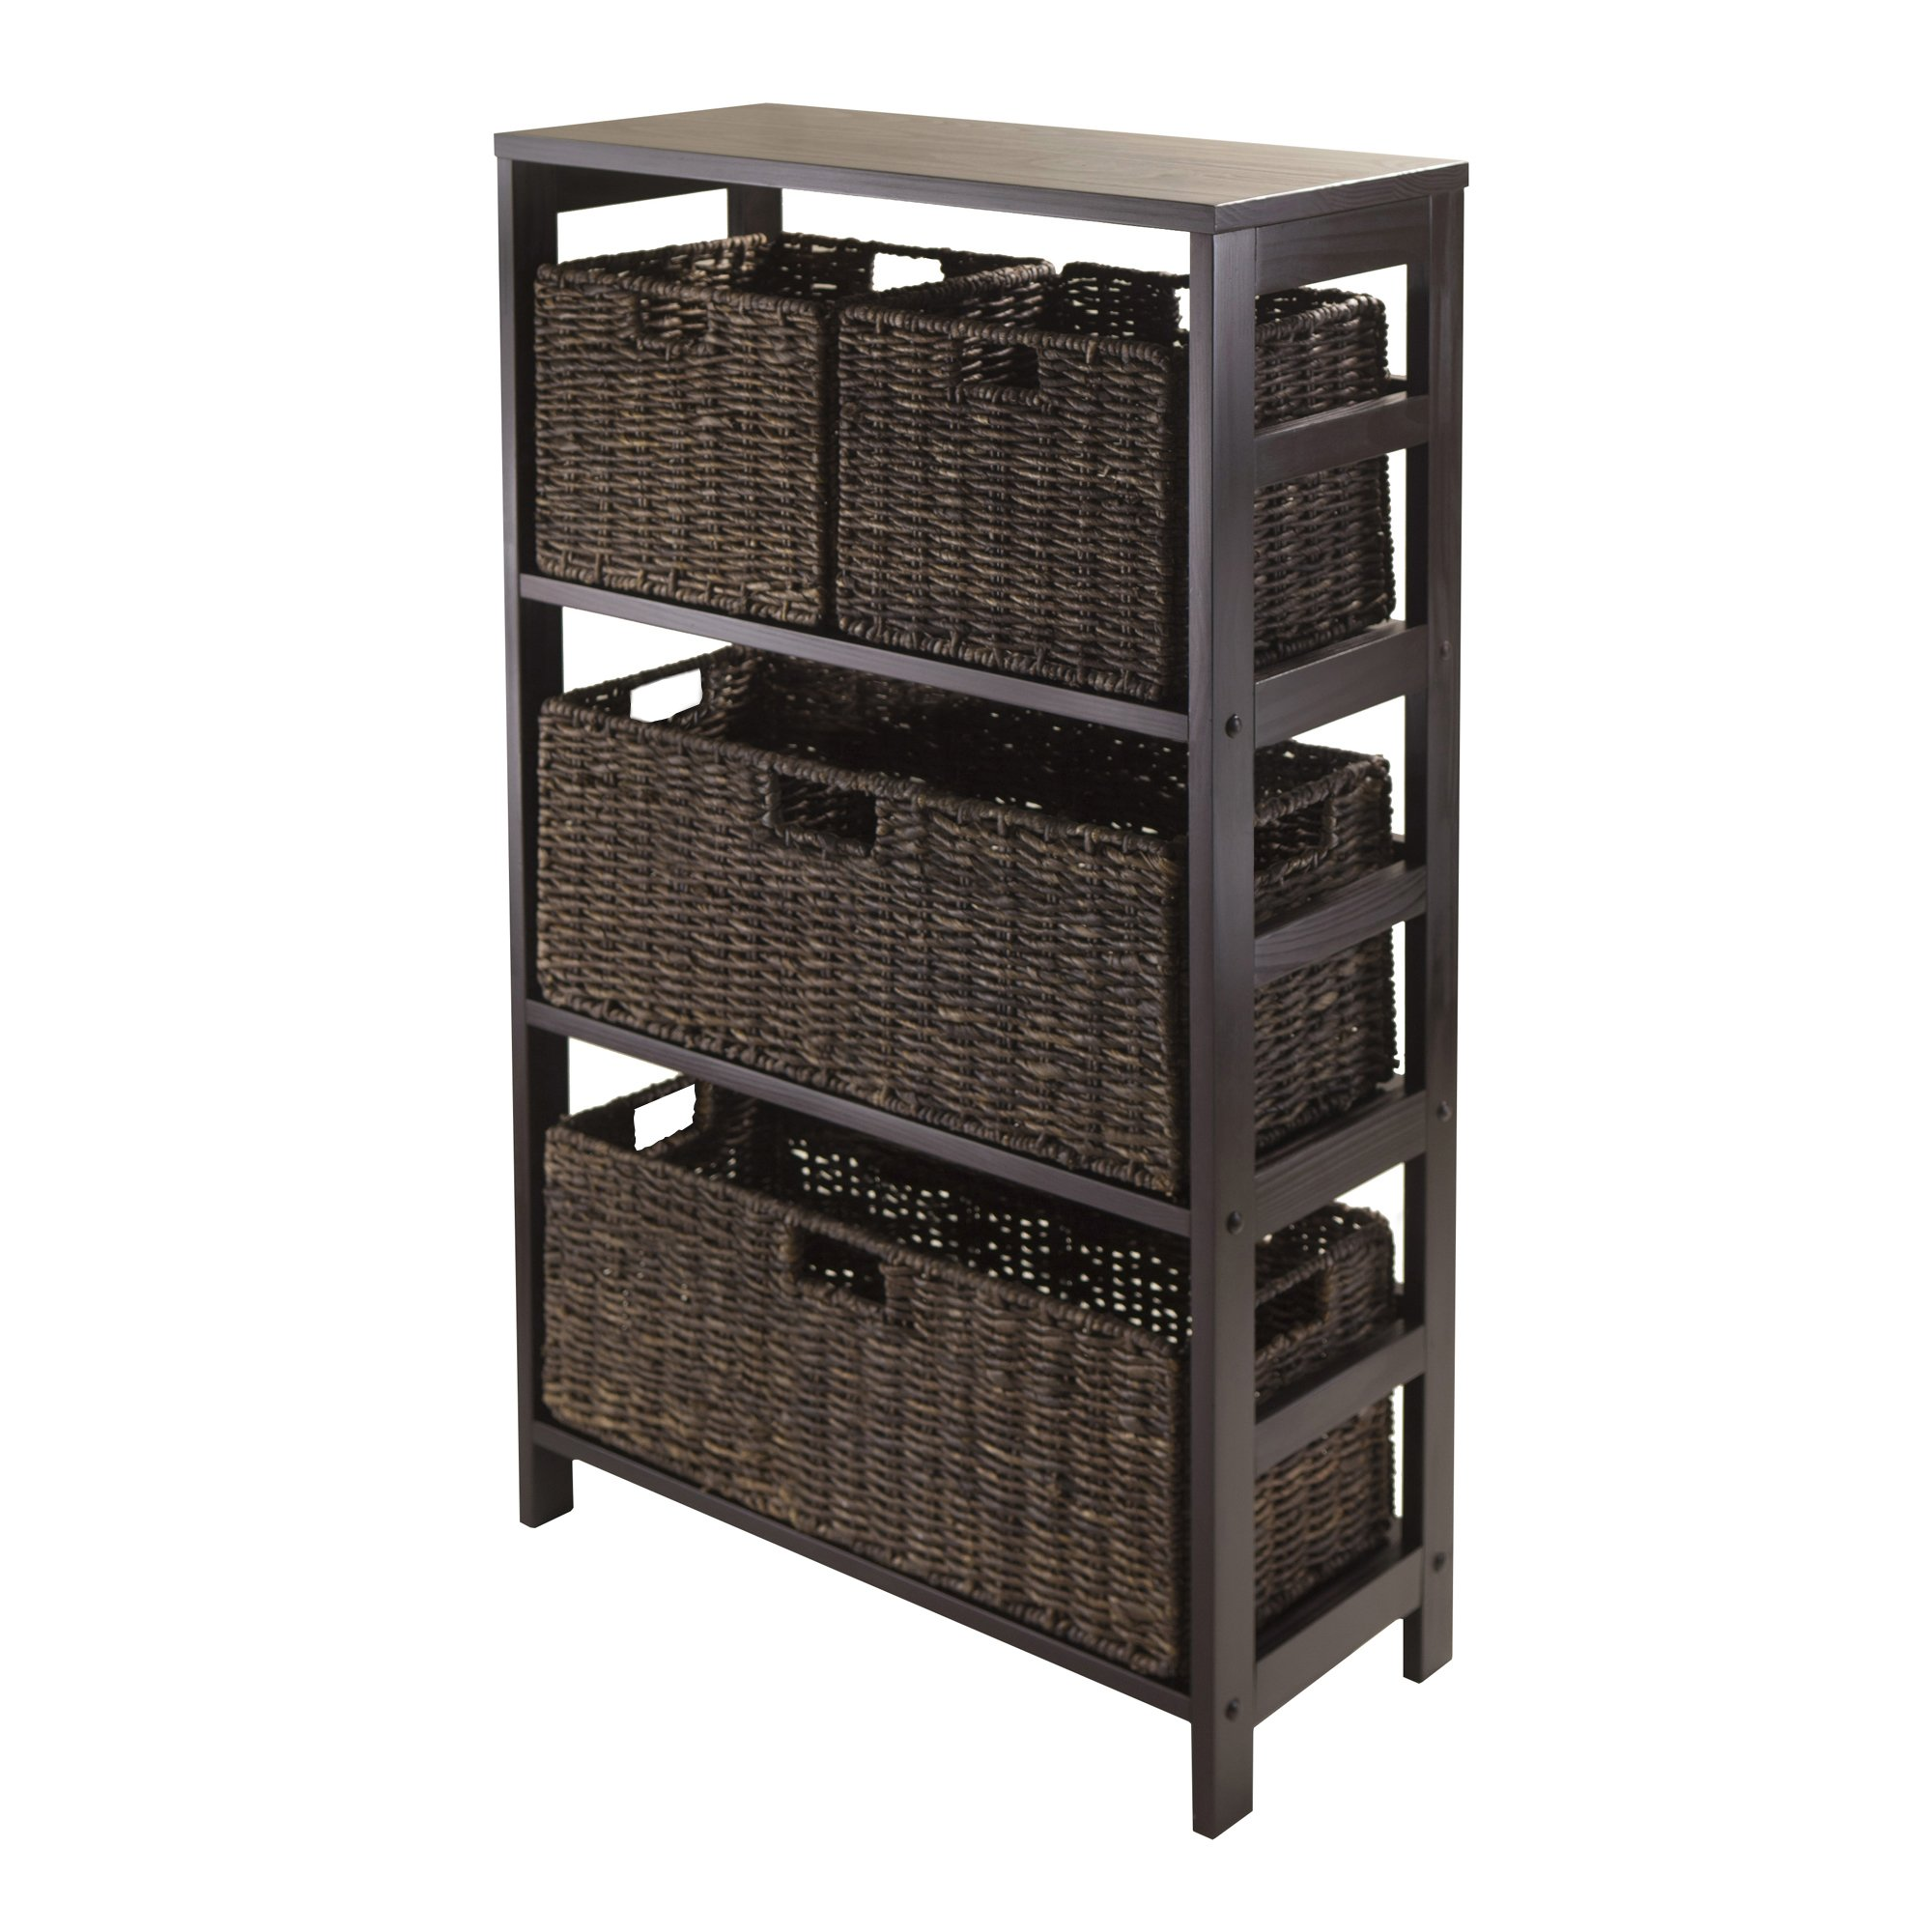 Winsome Granville 5-Piece Storage Shelf with 2 Large and 2 Small Foldable Baskets, Espresso by Winsome